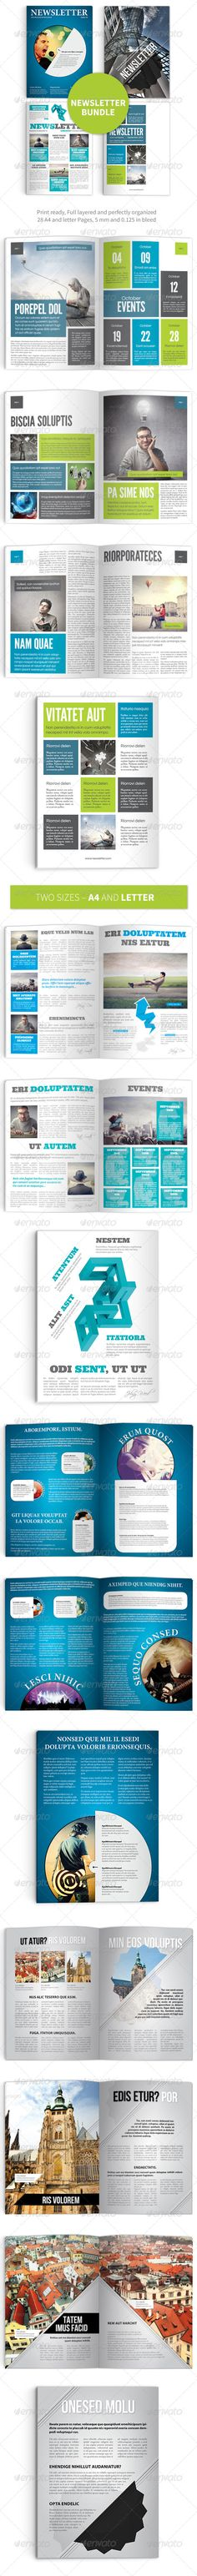 Modern Business Newsletter Template A4 Newsletter templates - business newsletter